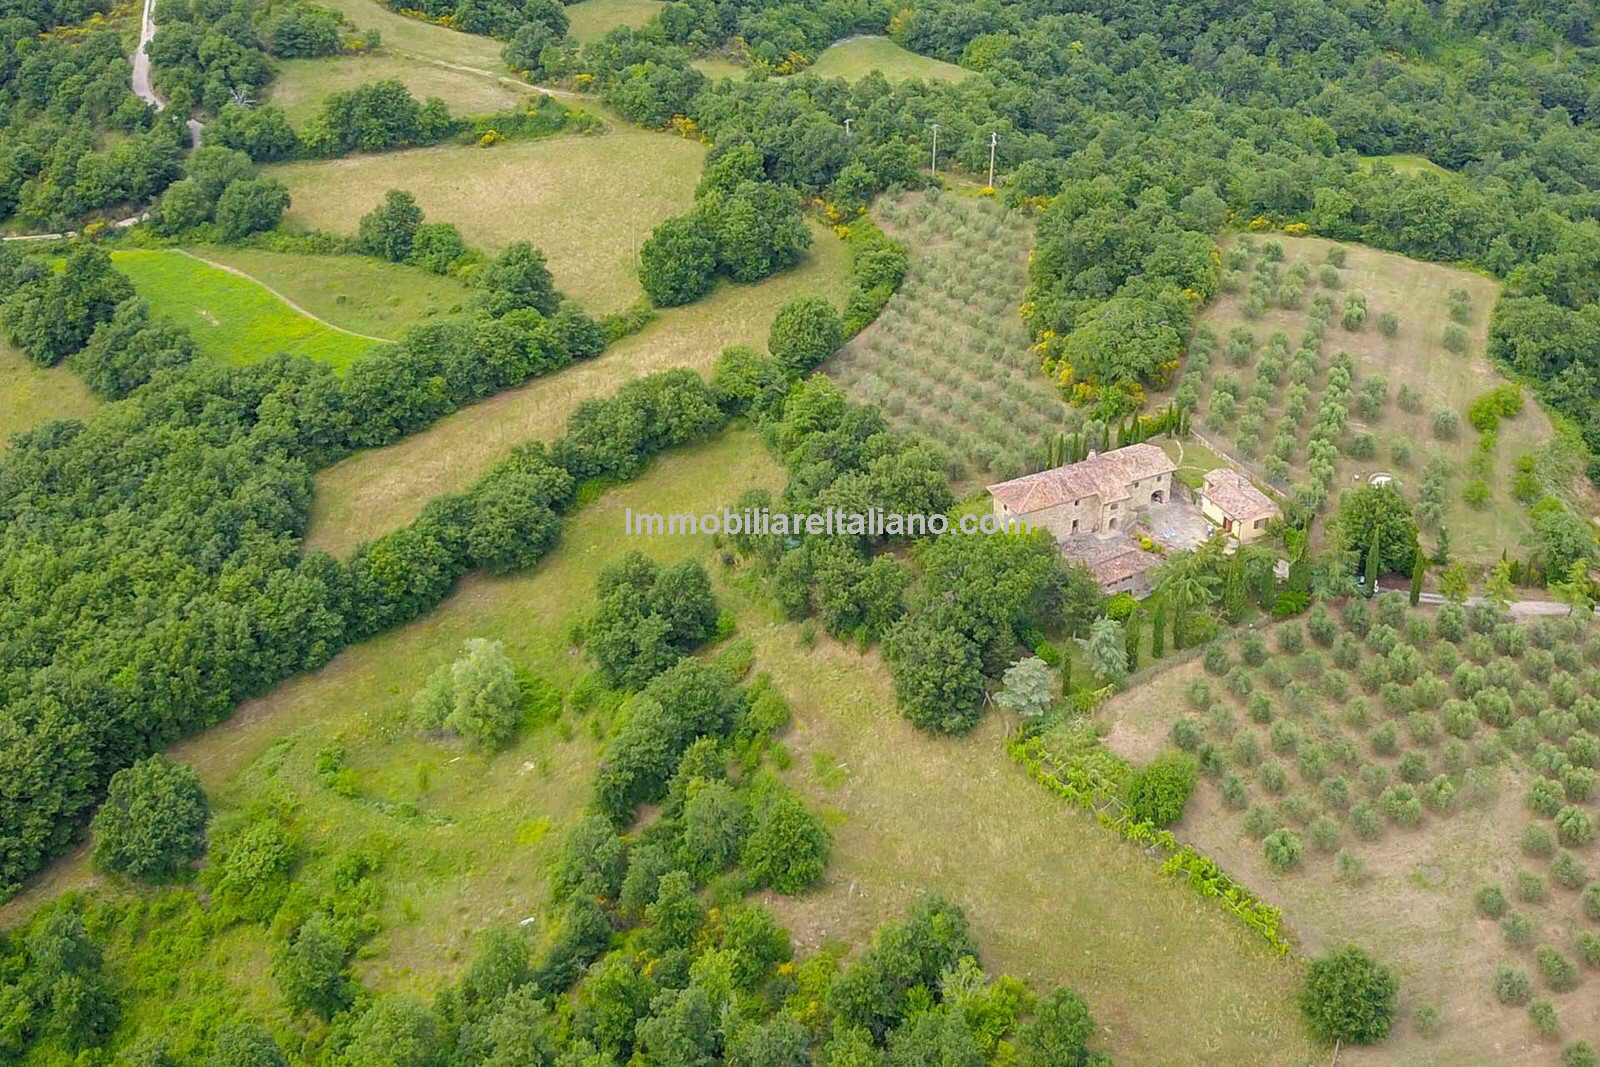 Aerial view of renovation property in Tuscany Italy